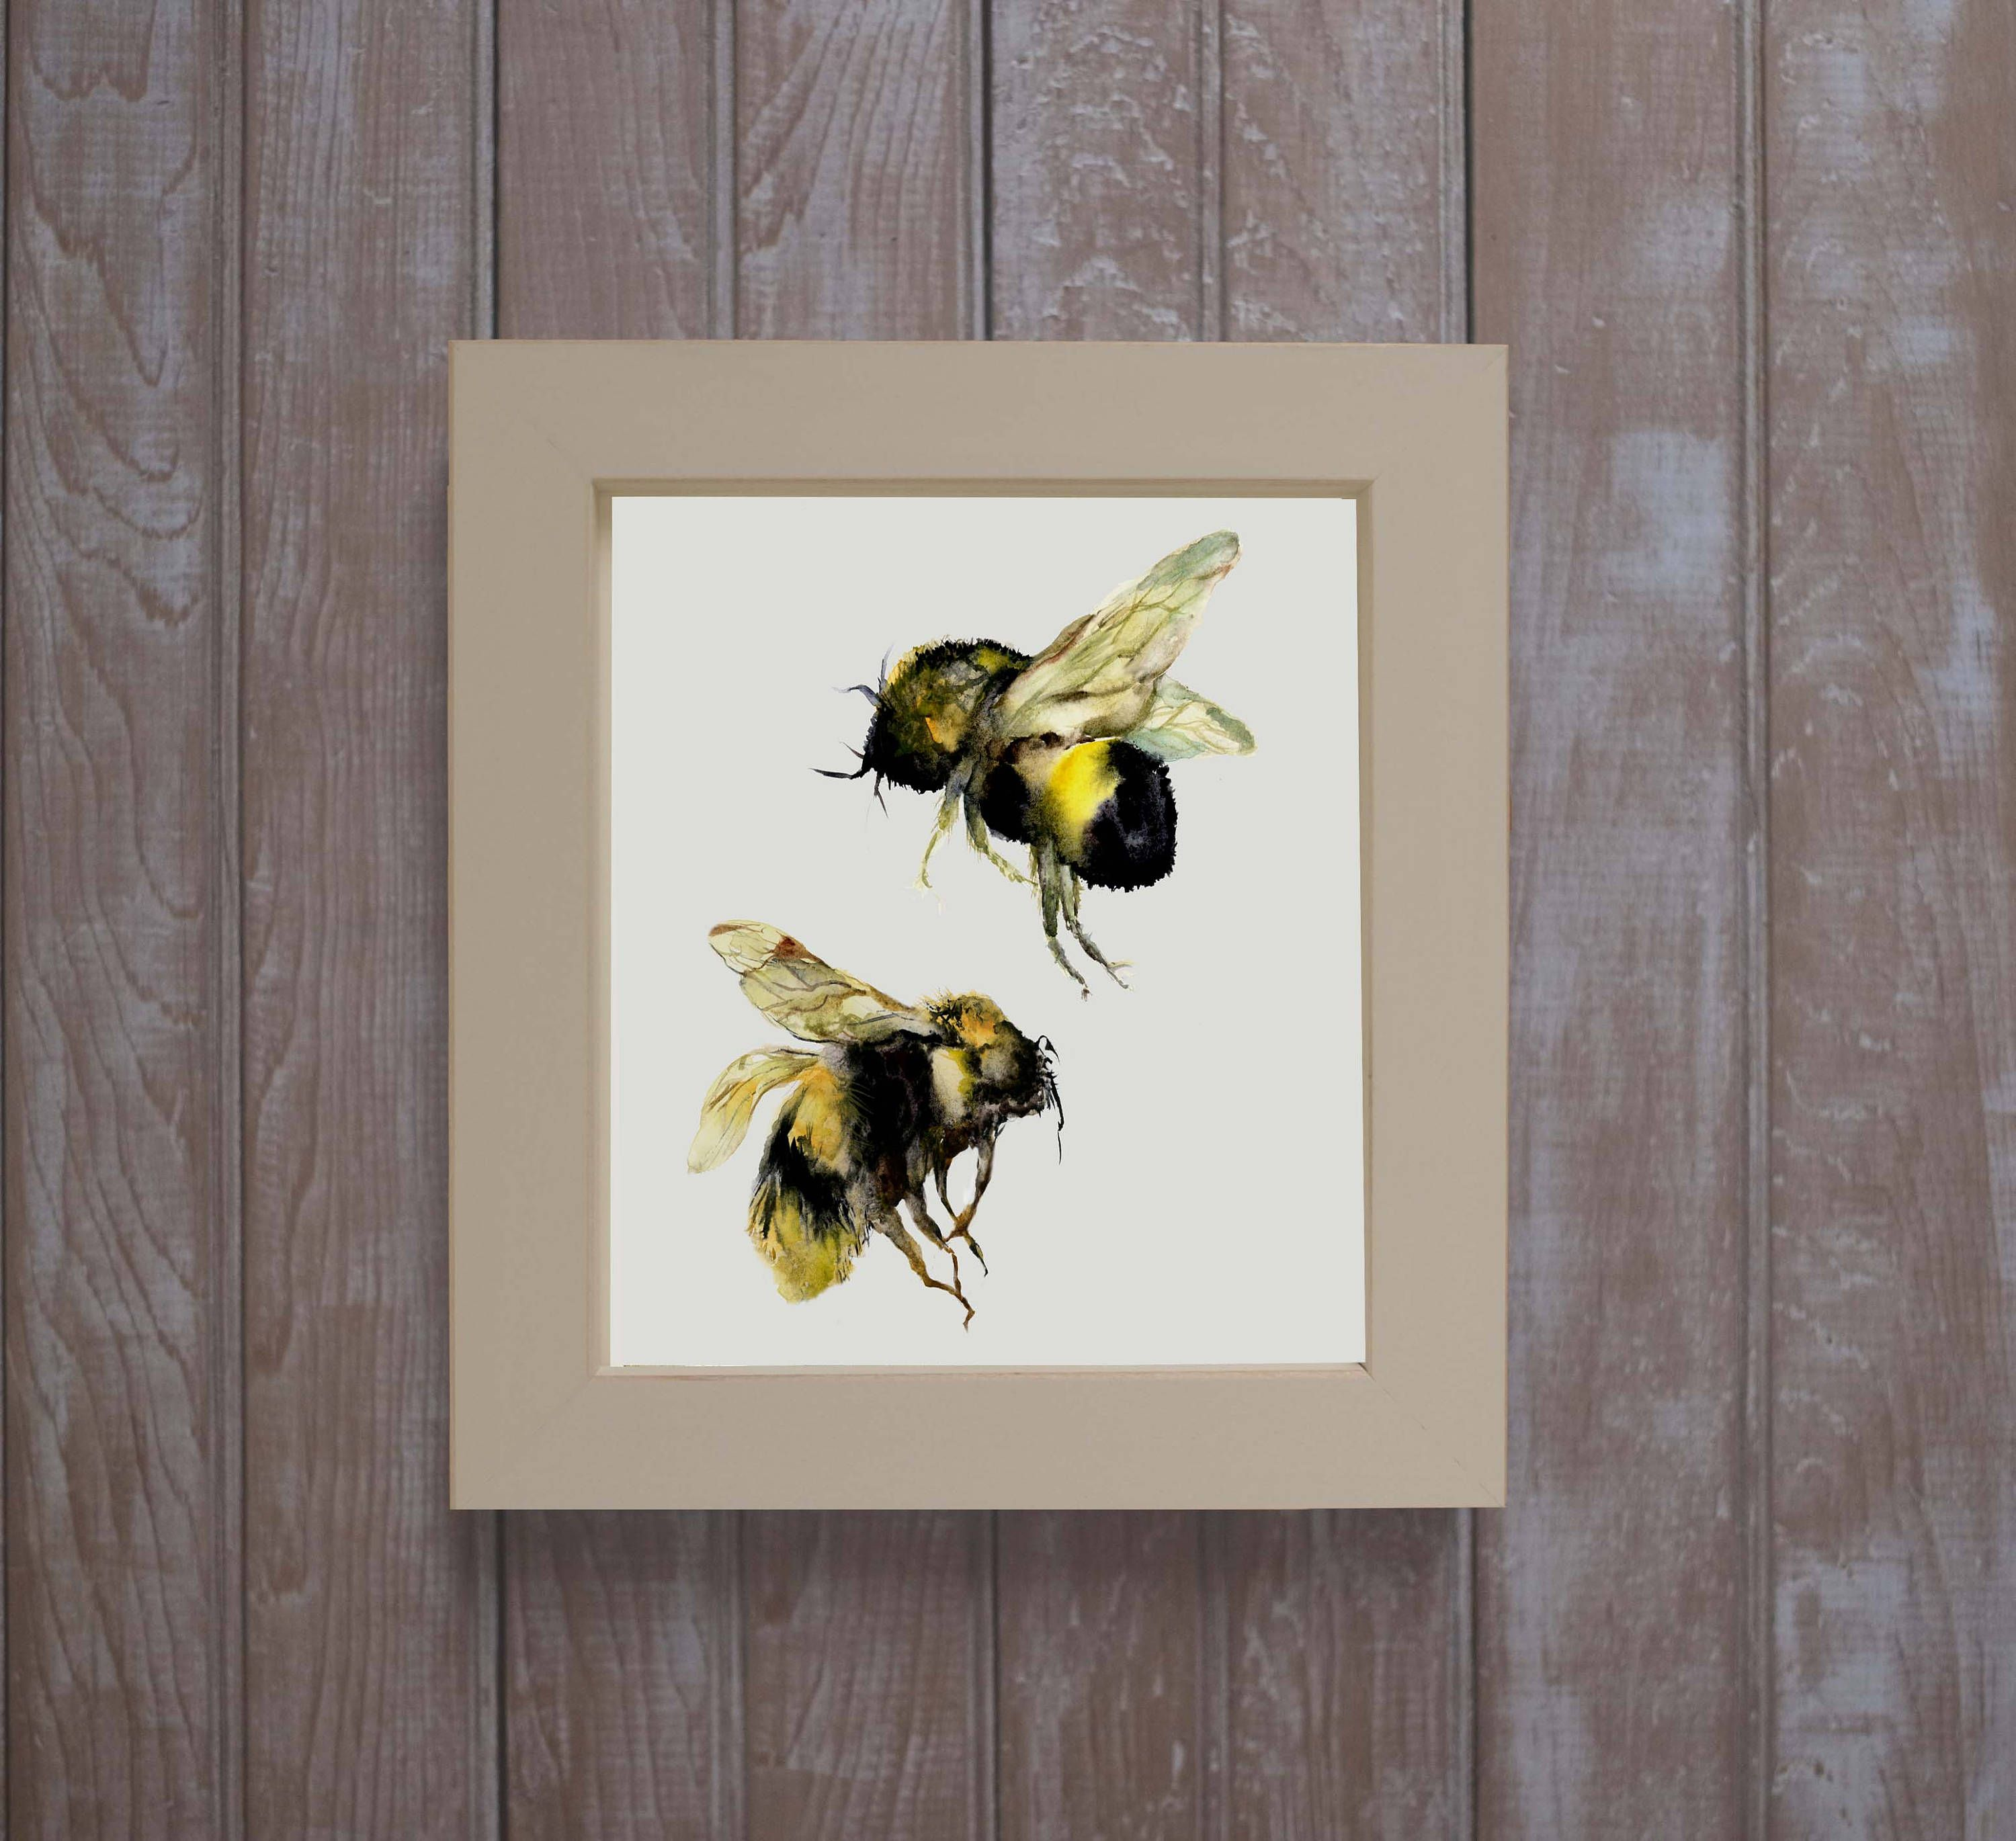 Framed bee print, framed insect watercolors, framed prints, bee ...